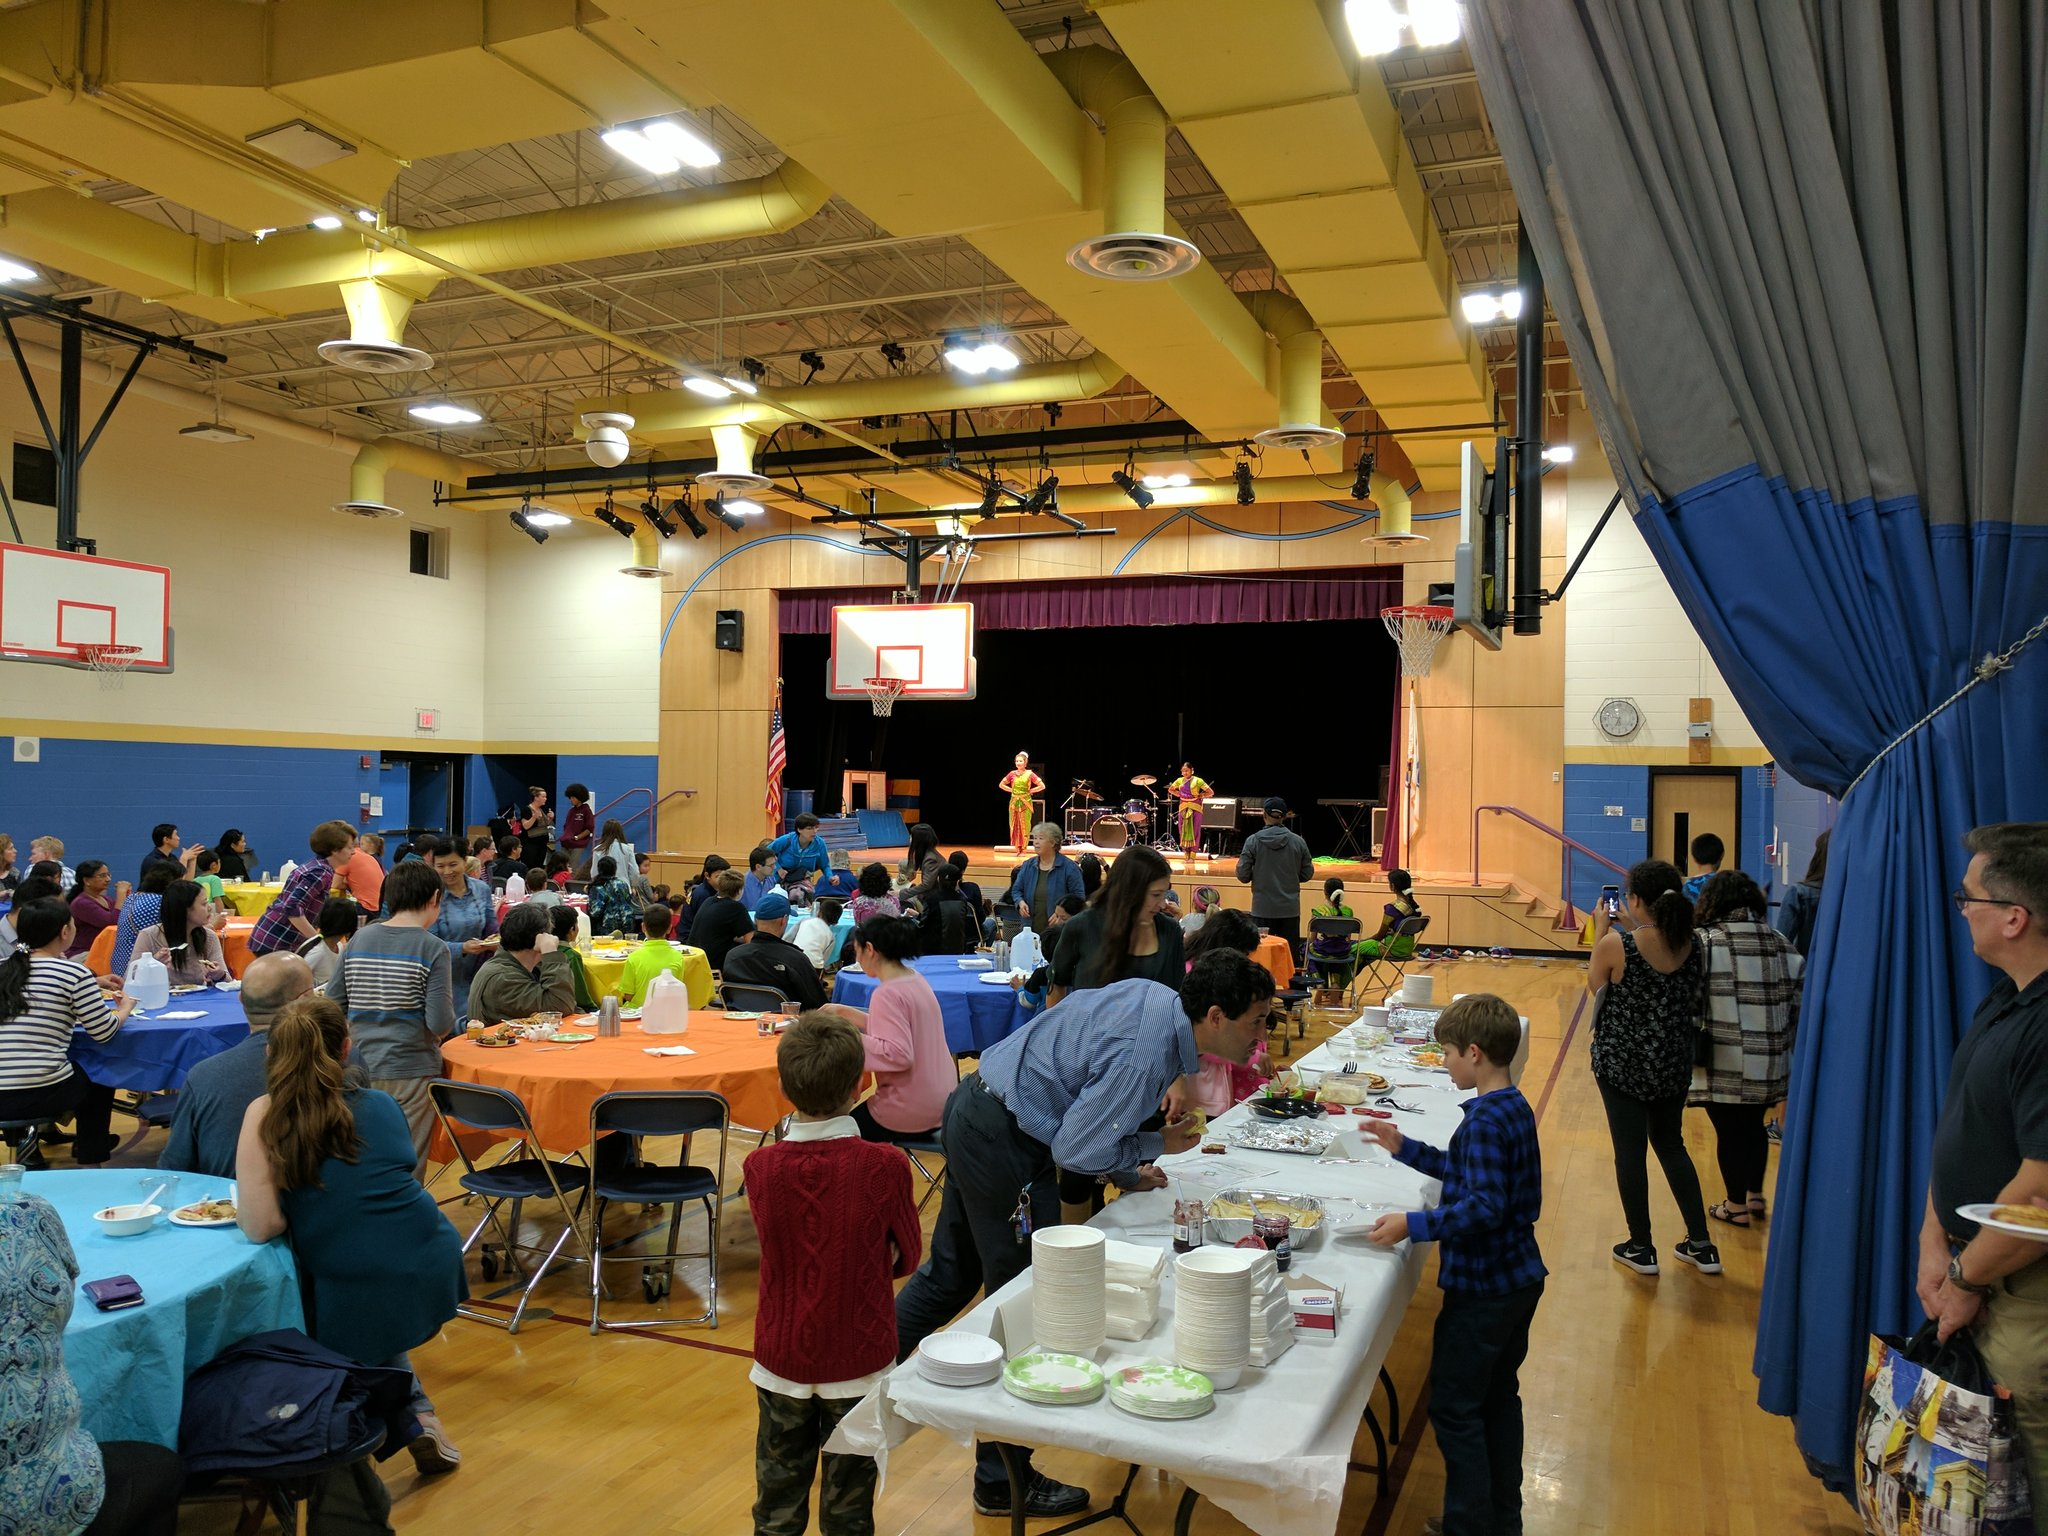 Tonight's International Potluck Supper @FiskeSchool ! Nice to see so many families out! #fiskeschool #diversity https://t.co/YGaPC8V56V